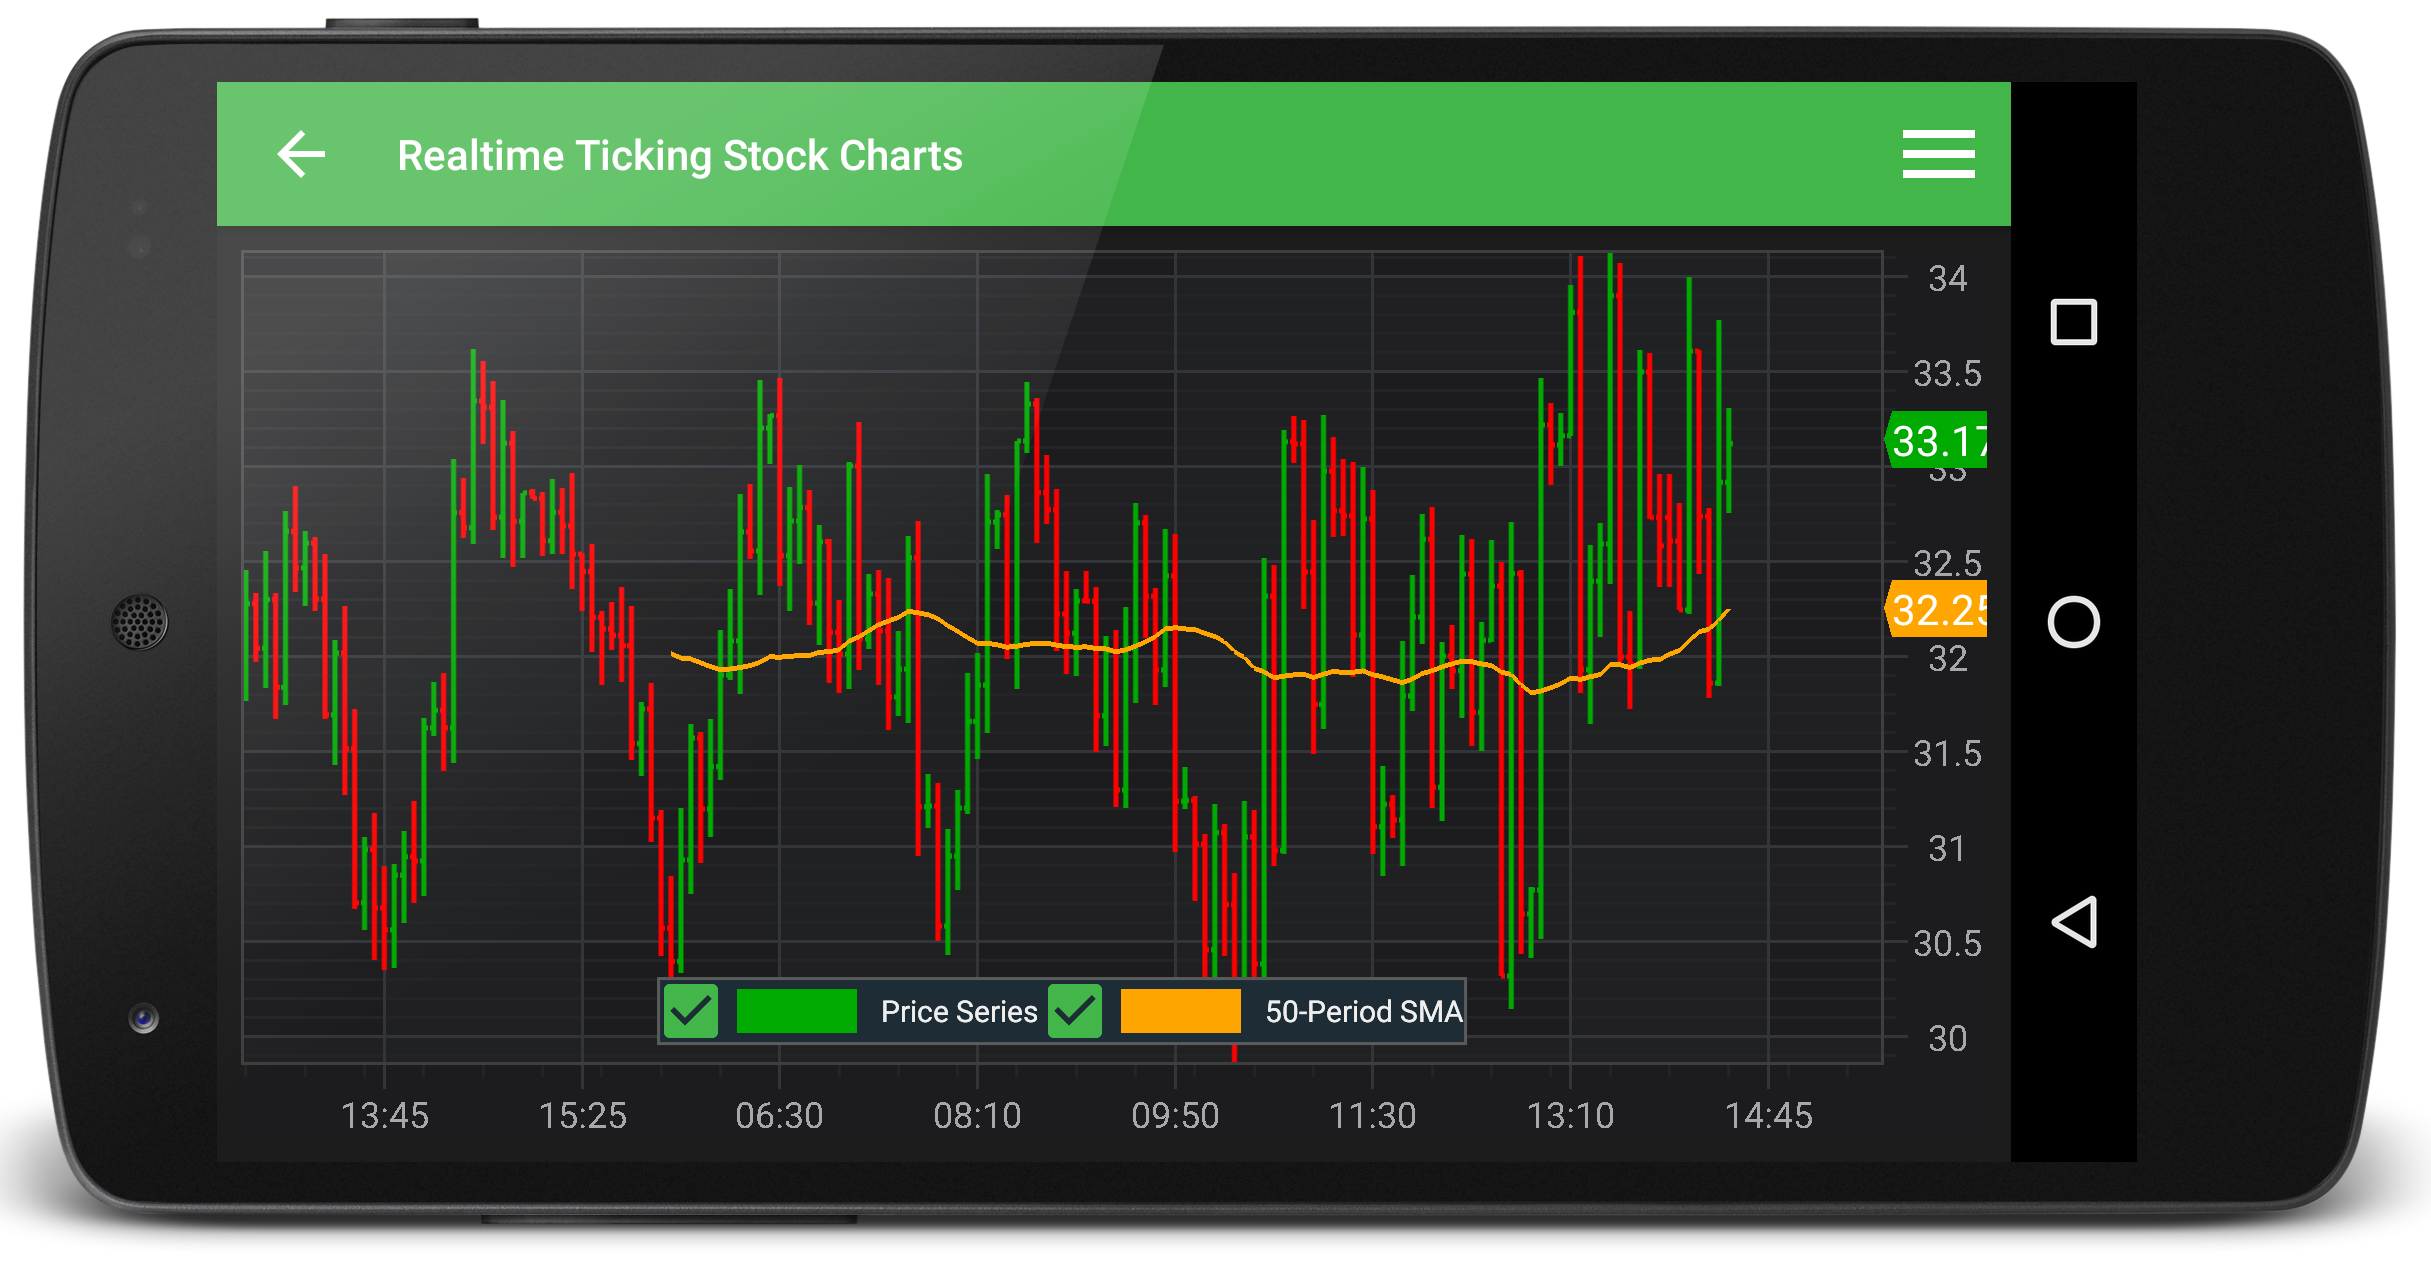 Android Candlestick Chart Example